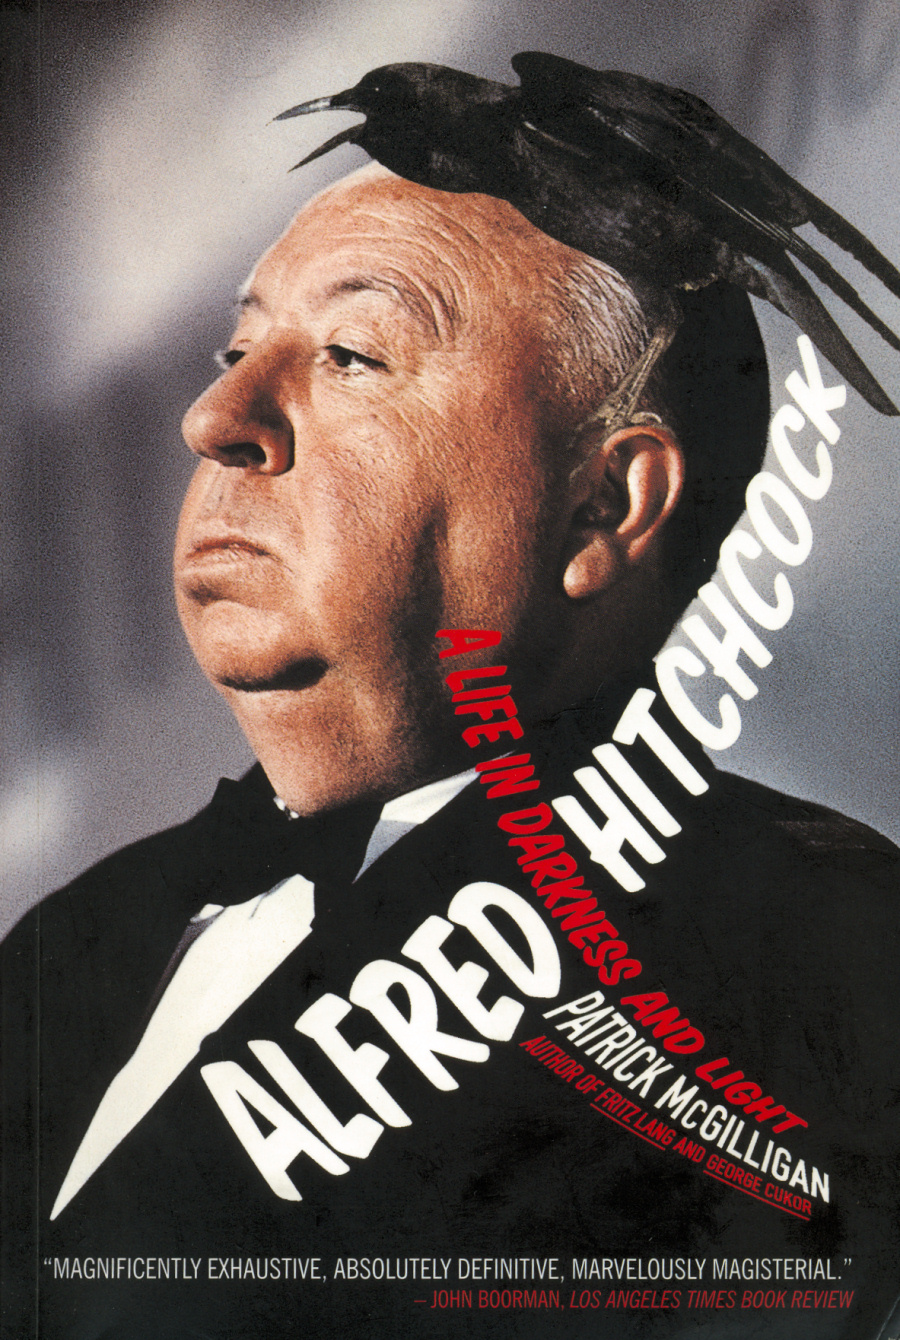 Alfred Hitchcock: A Life in Darkness and Light (2003) by Patrick McGilligan